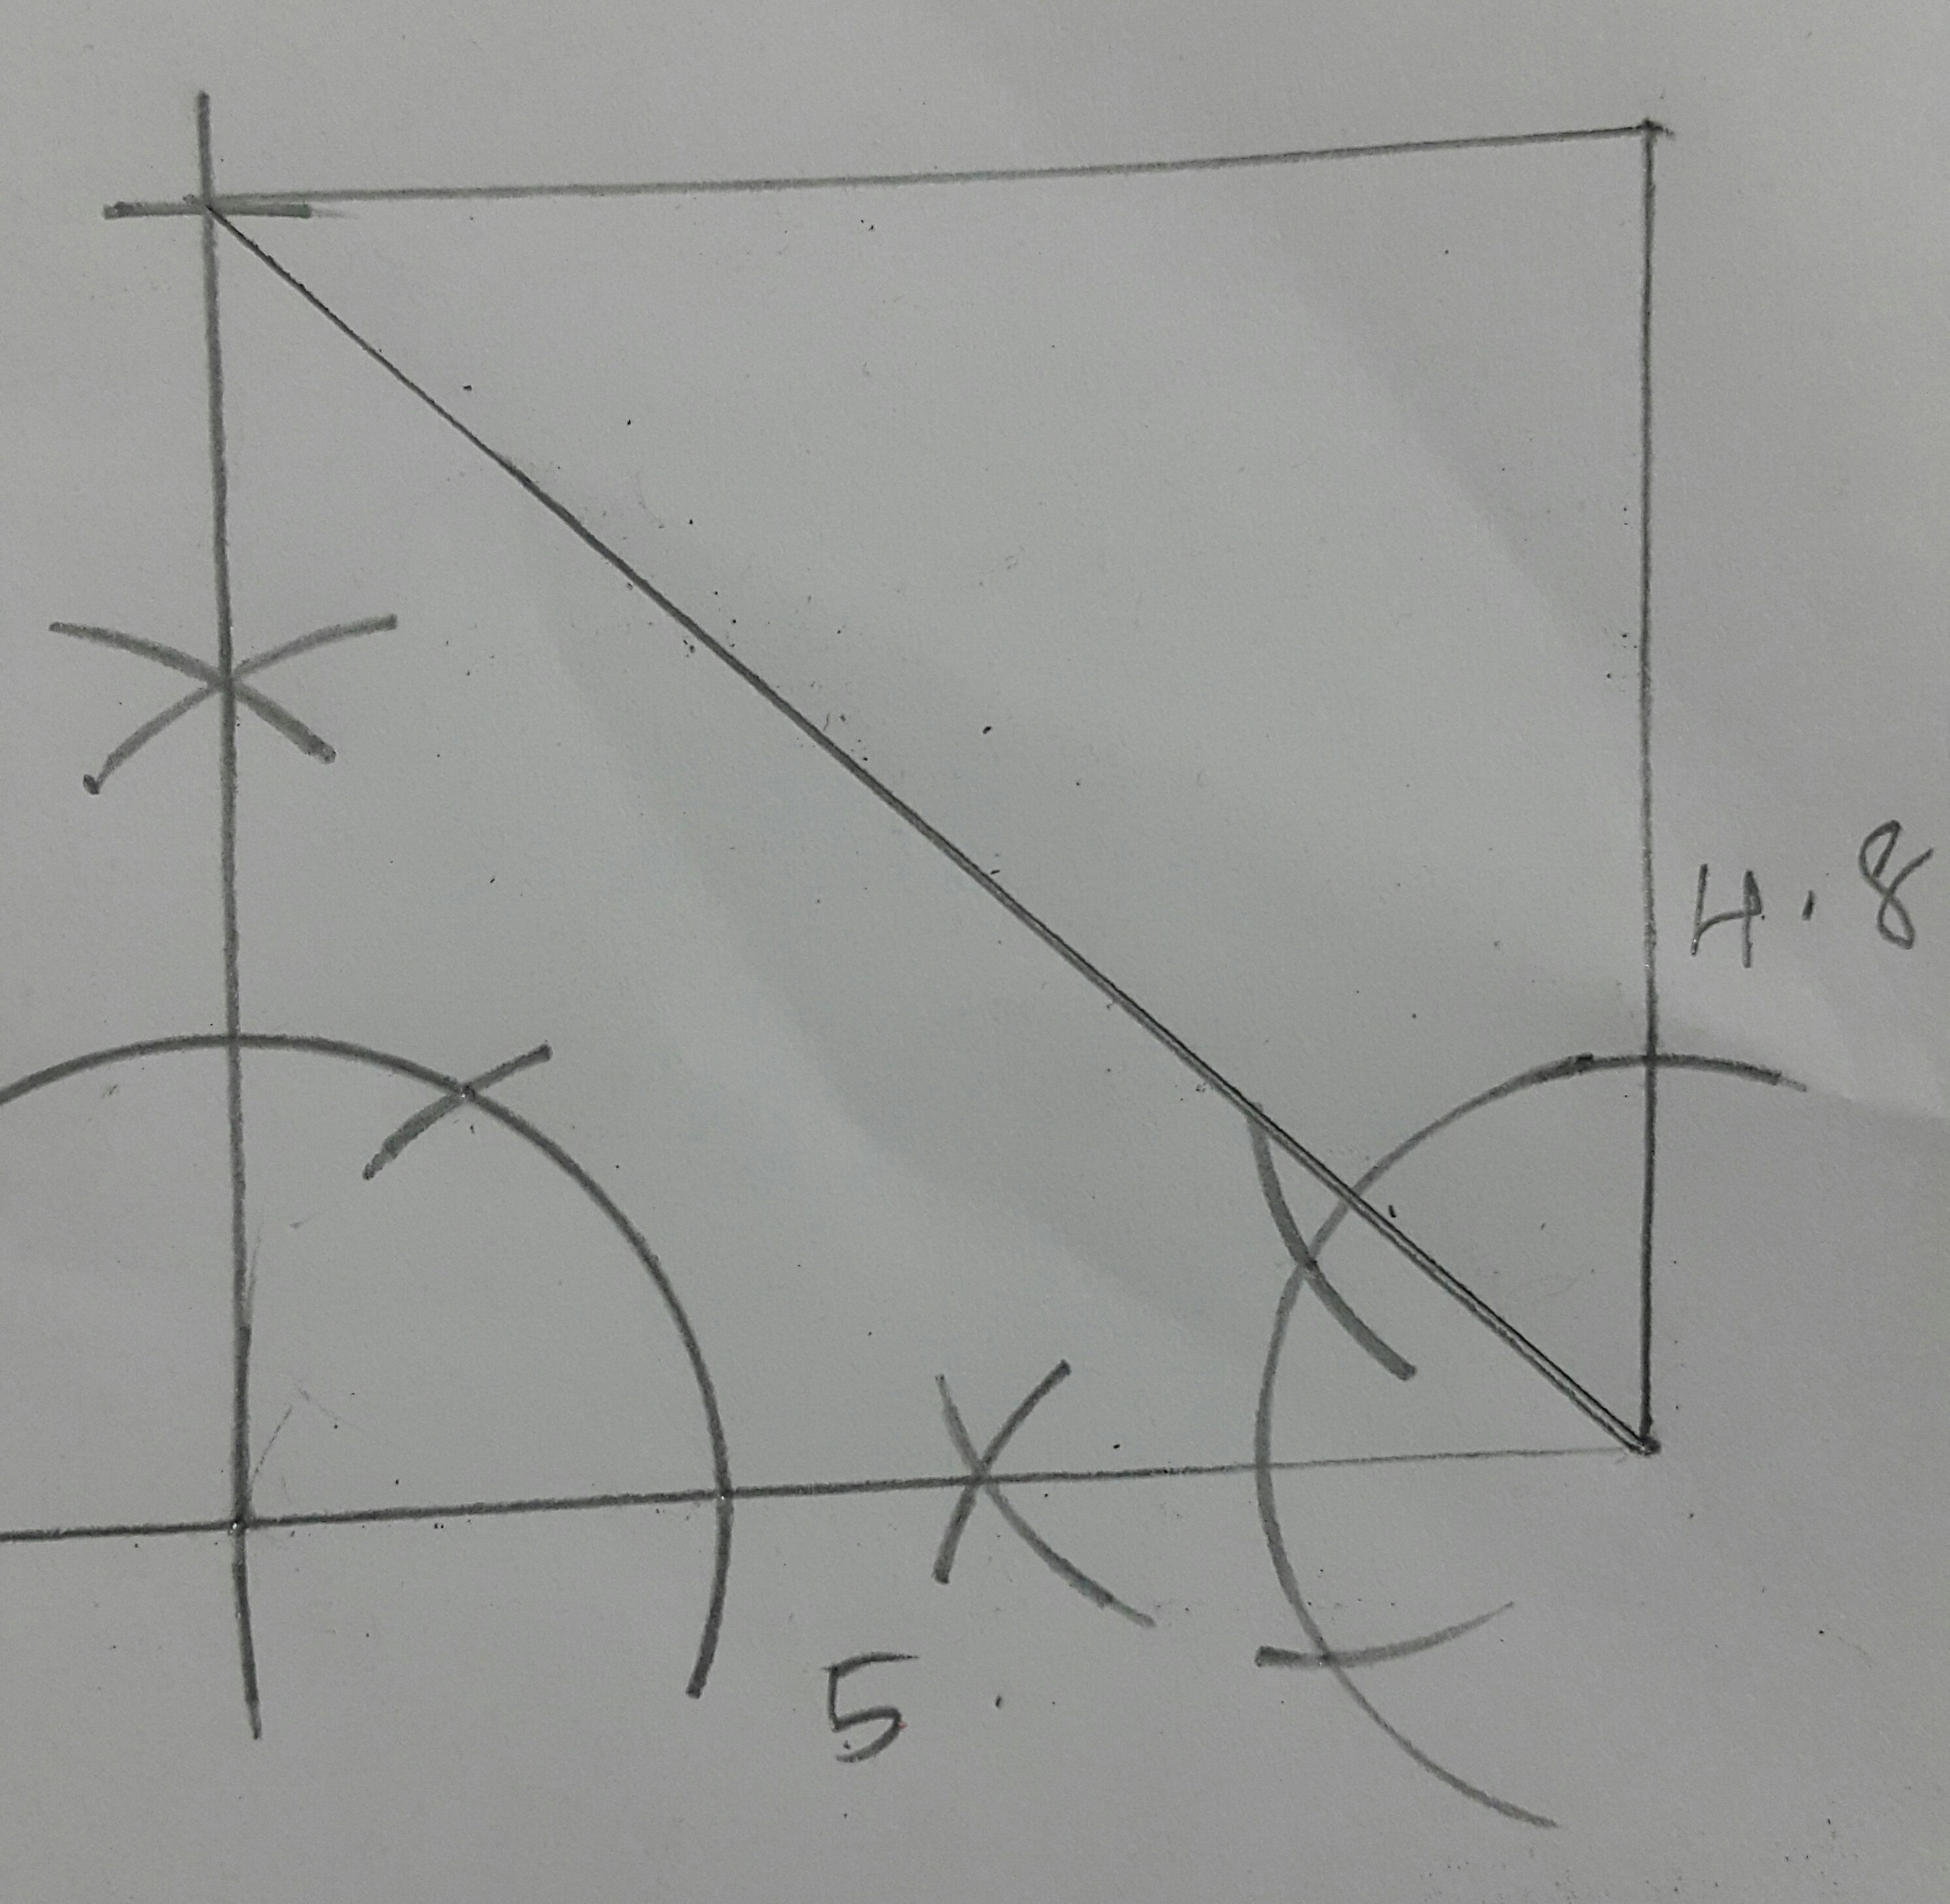 Construct A Rectangle Such That One Side Is 5cm And One Diagonal Is